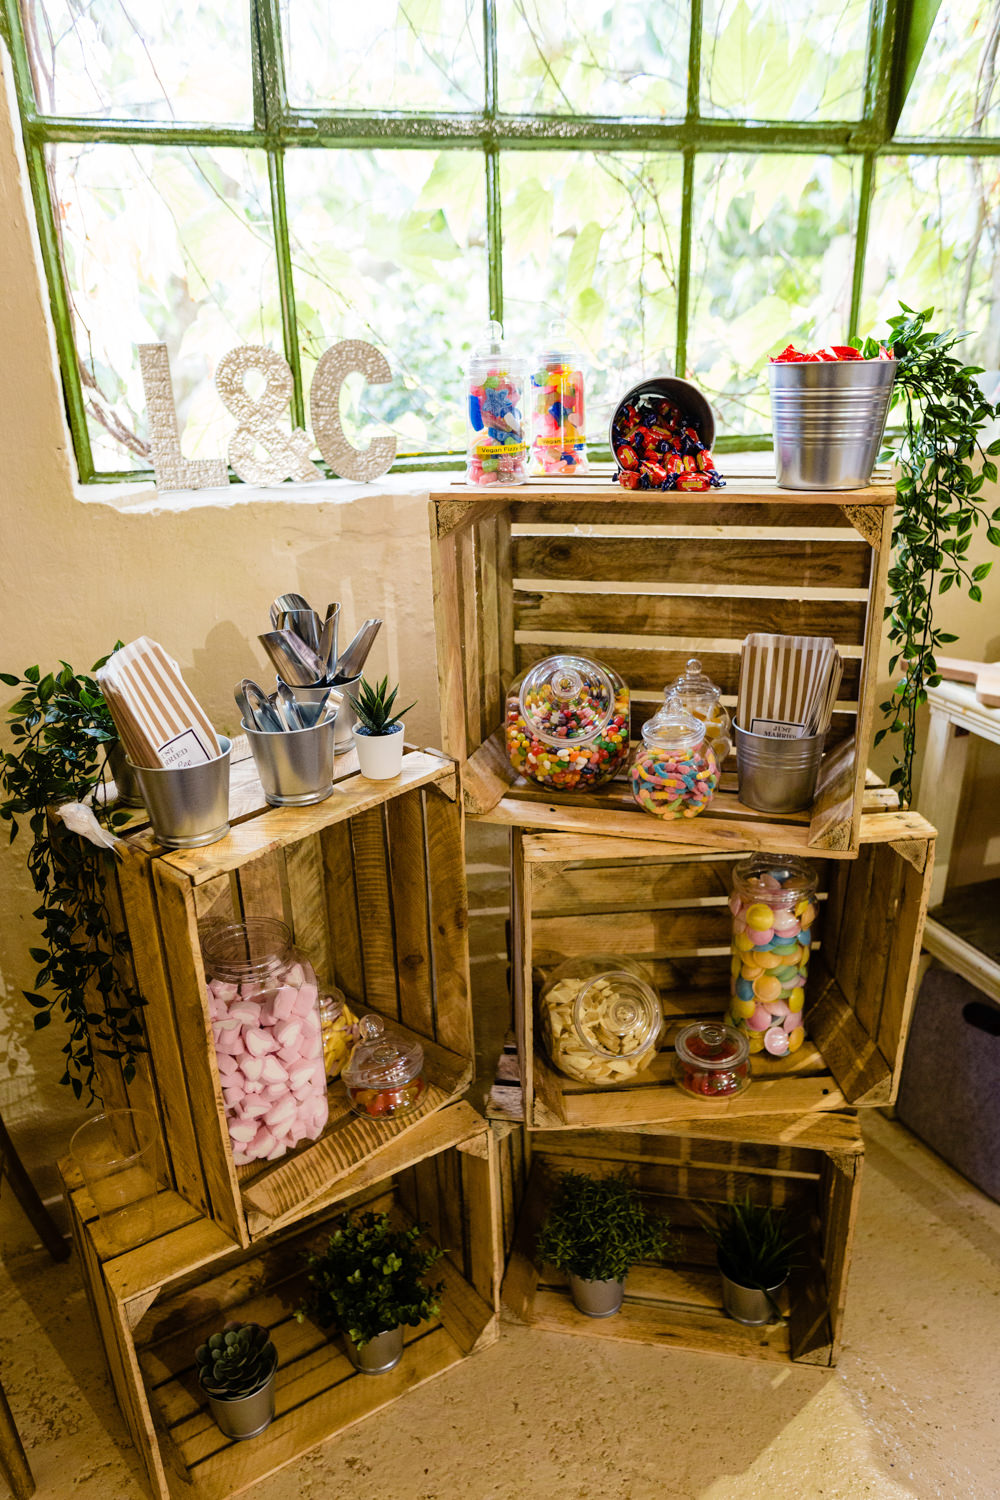 Sweetie Table Sweets Crates Cowshed Woodhall Farm Wedding Emma and Rich